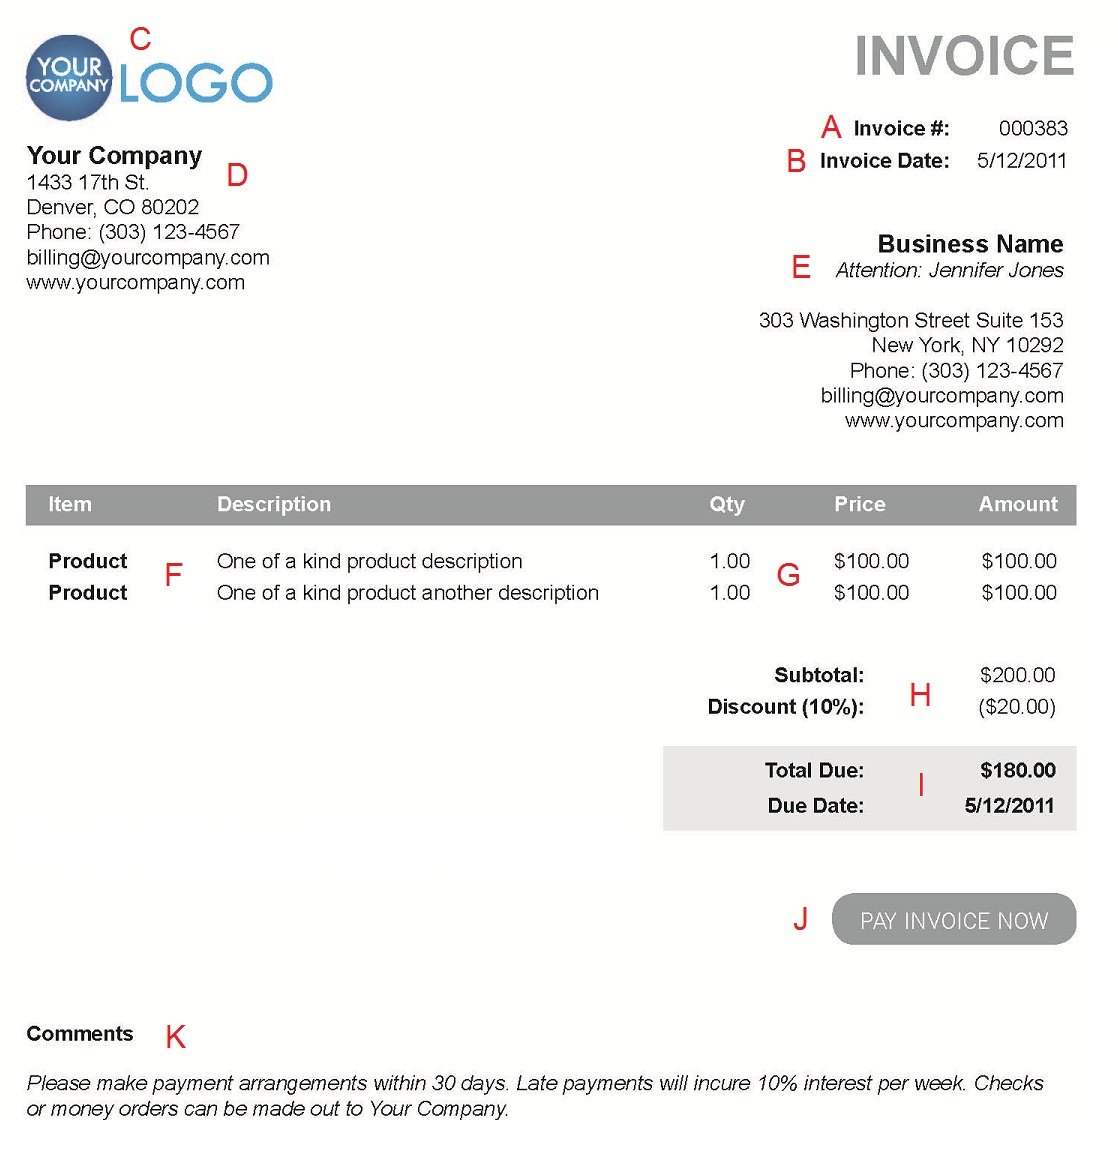 Aaaaeroincus  Sweet The  Different Sections Of An Electronic Payment Invoice With Goodlooking A  With Divine Zoho Invoices Also Paypal Invoicing In Addition Anax Invoice And Photography Invoice Template As Well As What Is A Commercial Invoice Additionally Google Drive Invoice Template From Paysimplecom With Aaaaeroincus  Goodlooking The  Different Sections Of An Electronic Payment Invoice With Divine A  And Sweet Zoho Invoices Also Paypal Invoicing In Addition Anax Invoice From Paysimplecom